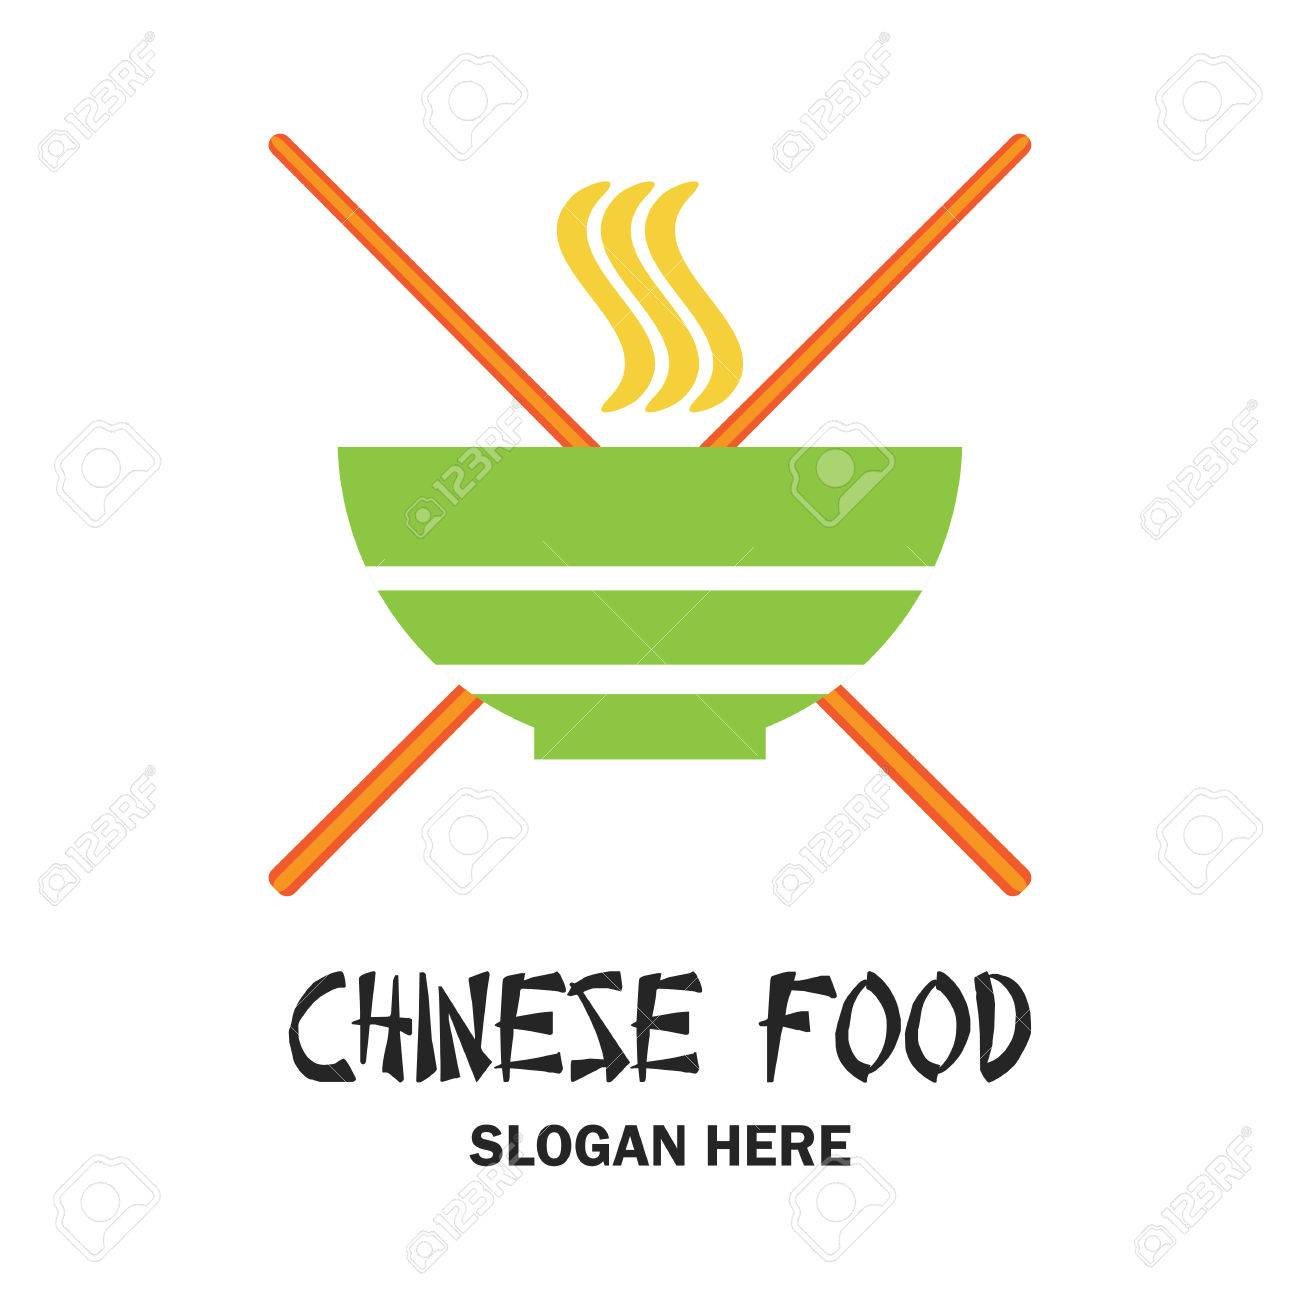 chinese restaurant chinese food logo with text space for your rh 123rf com chinese restaurant lago vista texas chinese restaurant logan ohio